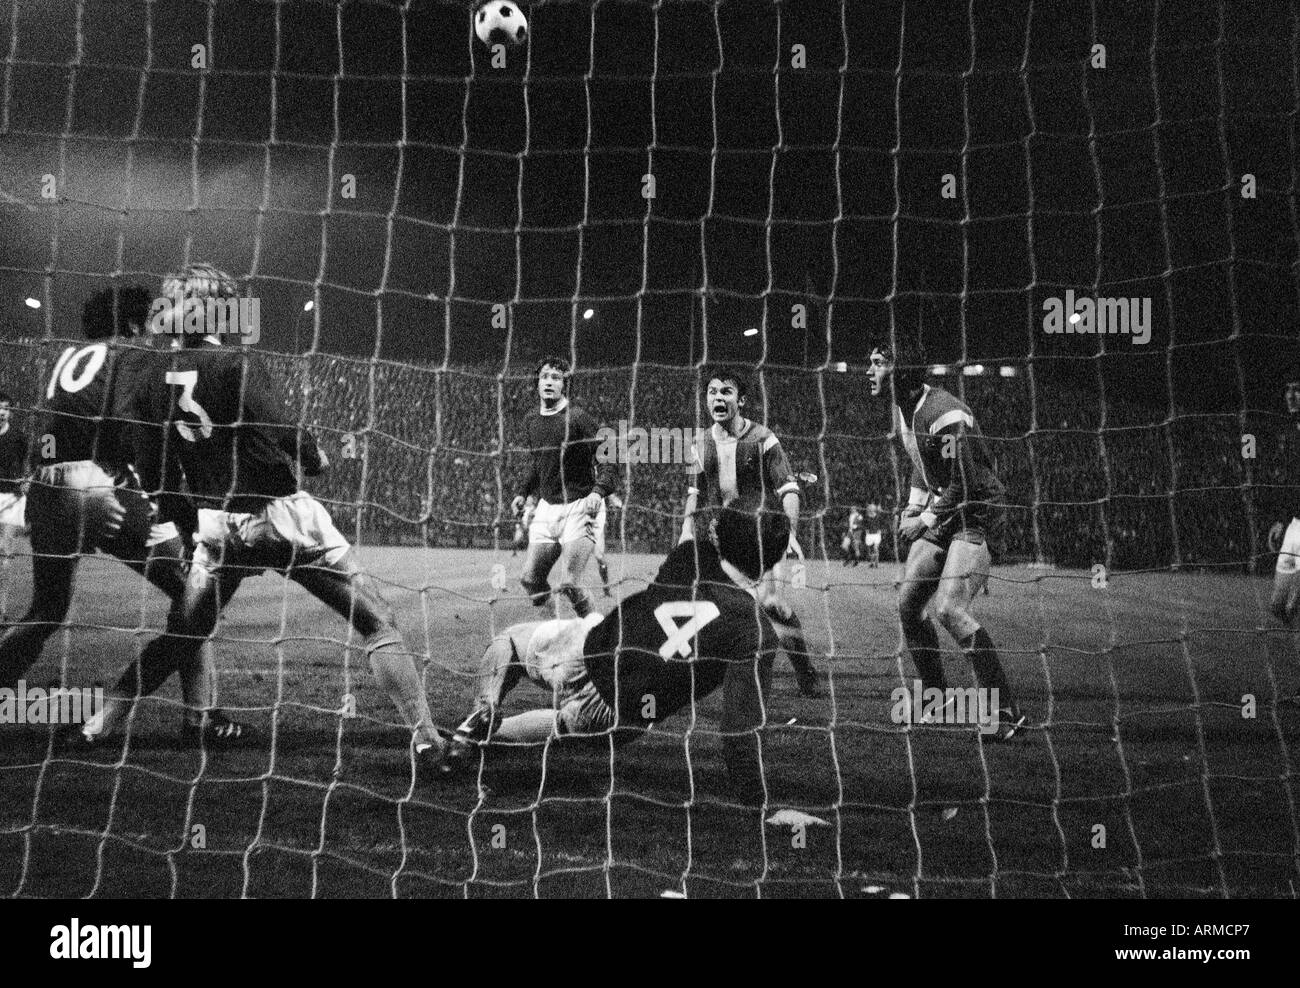 football, European Cup, eighth final, first leg, 1970/1971, Boekelberg Stadium in Moenchengladbach, Borussia Moenchengladbach versus FC Everton 1:1, scene of the match, Herbert Laumen (MG) 2.f.r and Ulrik le Fevre (MG) right, all other players from Everto - Stock Image